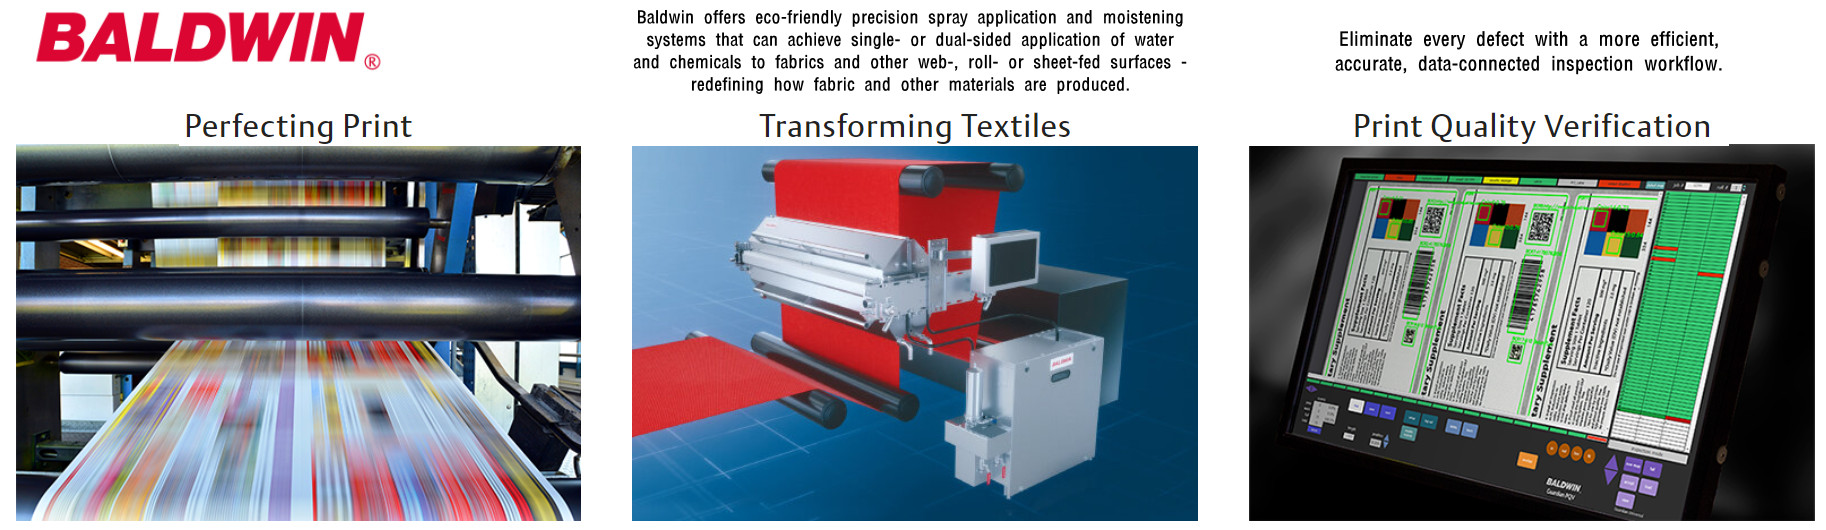 Baldwin specializes in engineering and manufacturing solutions for printing, packaging & converting, textile production, film extrusion, and other industrial applications